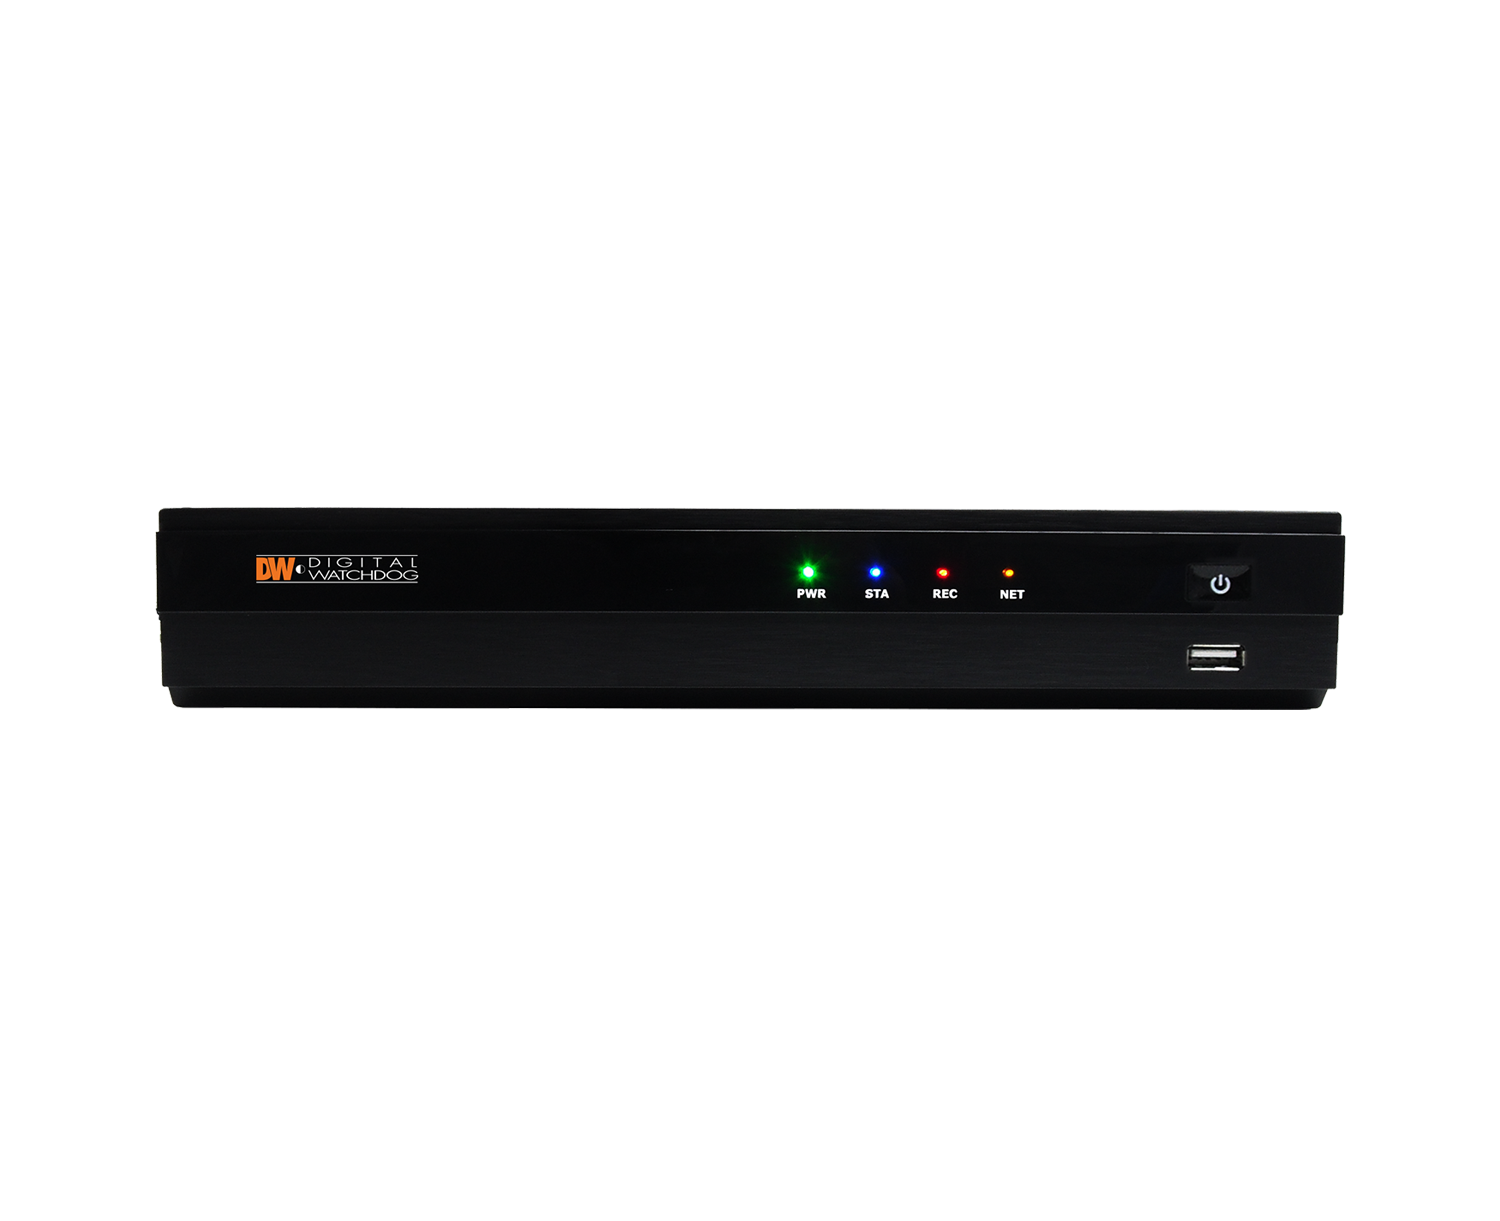 Vmax Ip Plus 4 Channel Poe Nvr With 5 Virtual Channels